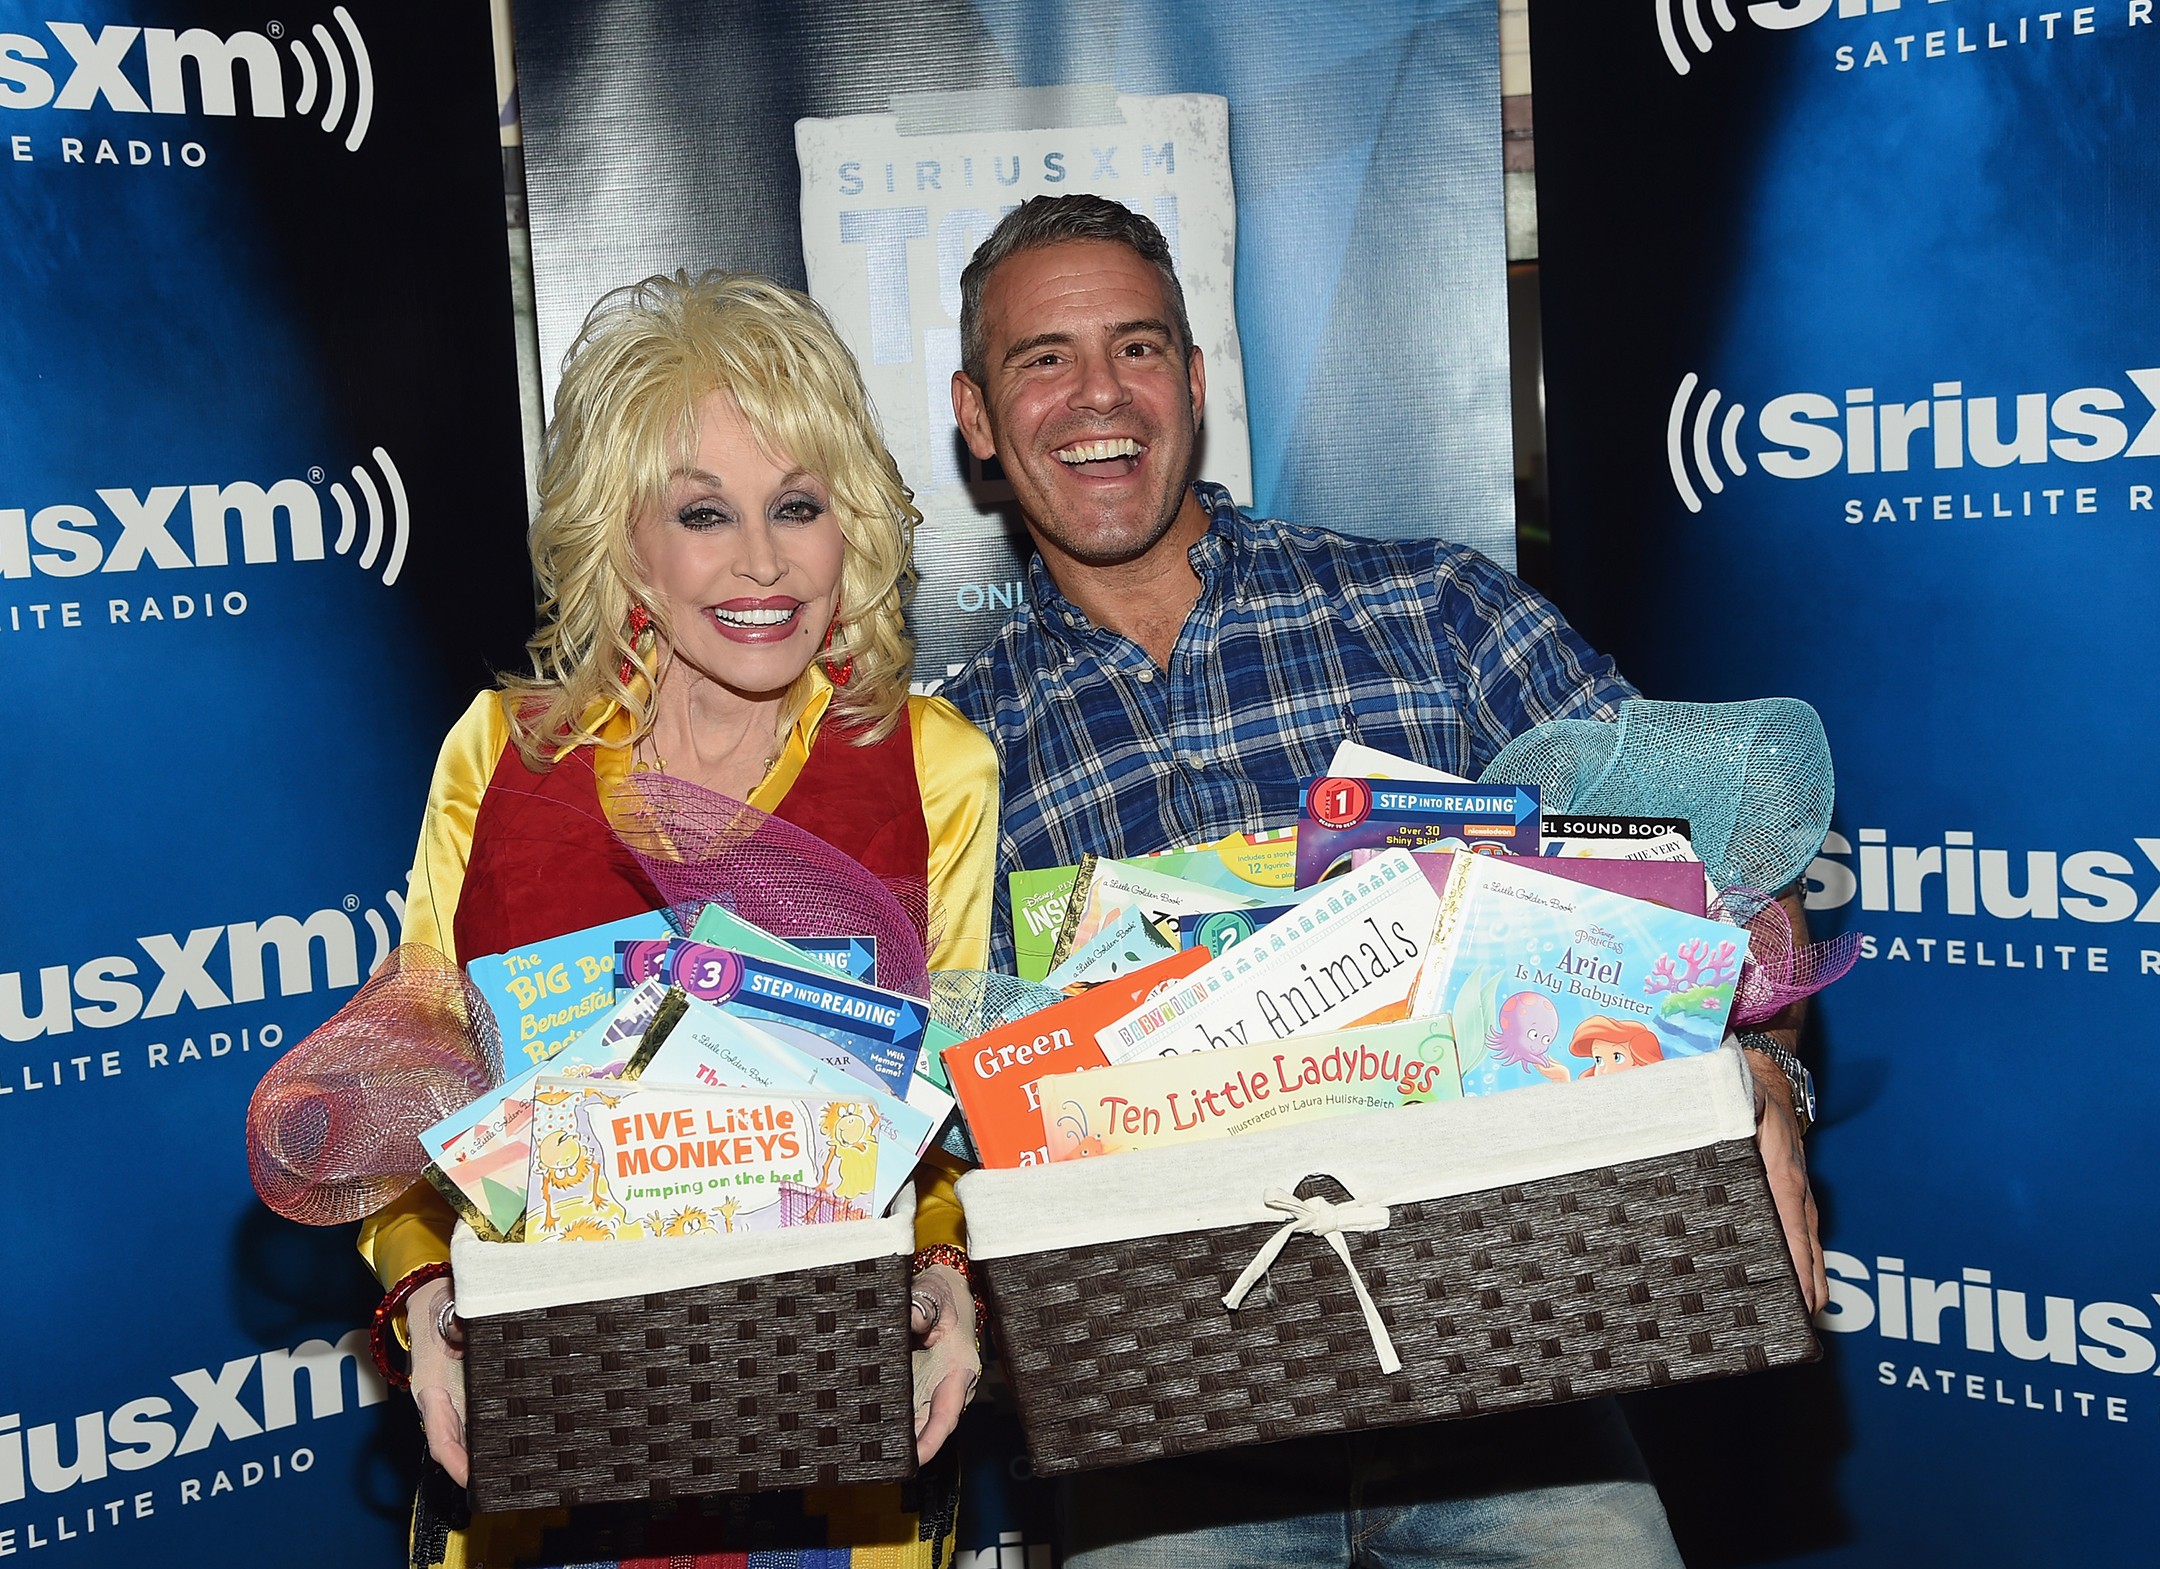 Dolly Parton, on the left, standing next to Andy Cohen, on the right, both smiling wide and holding baskets full of books